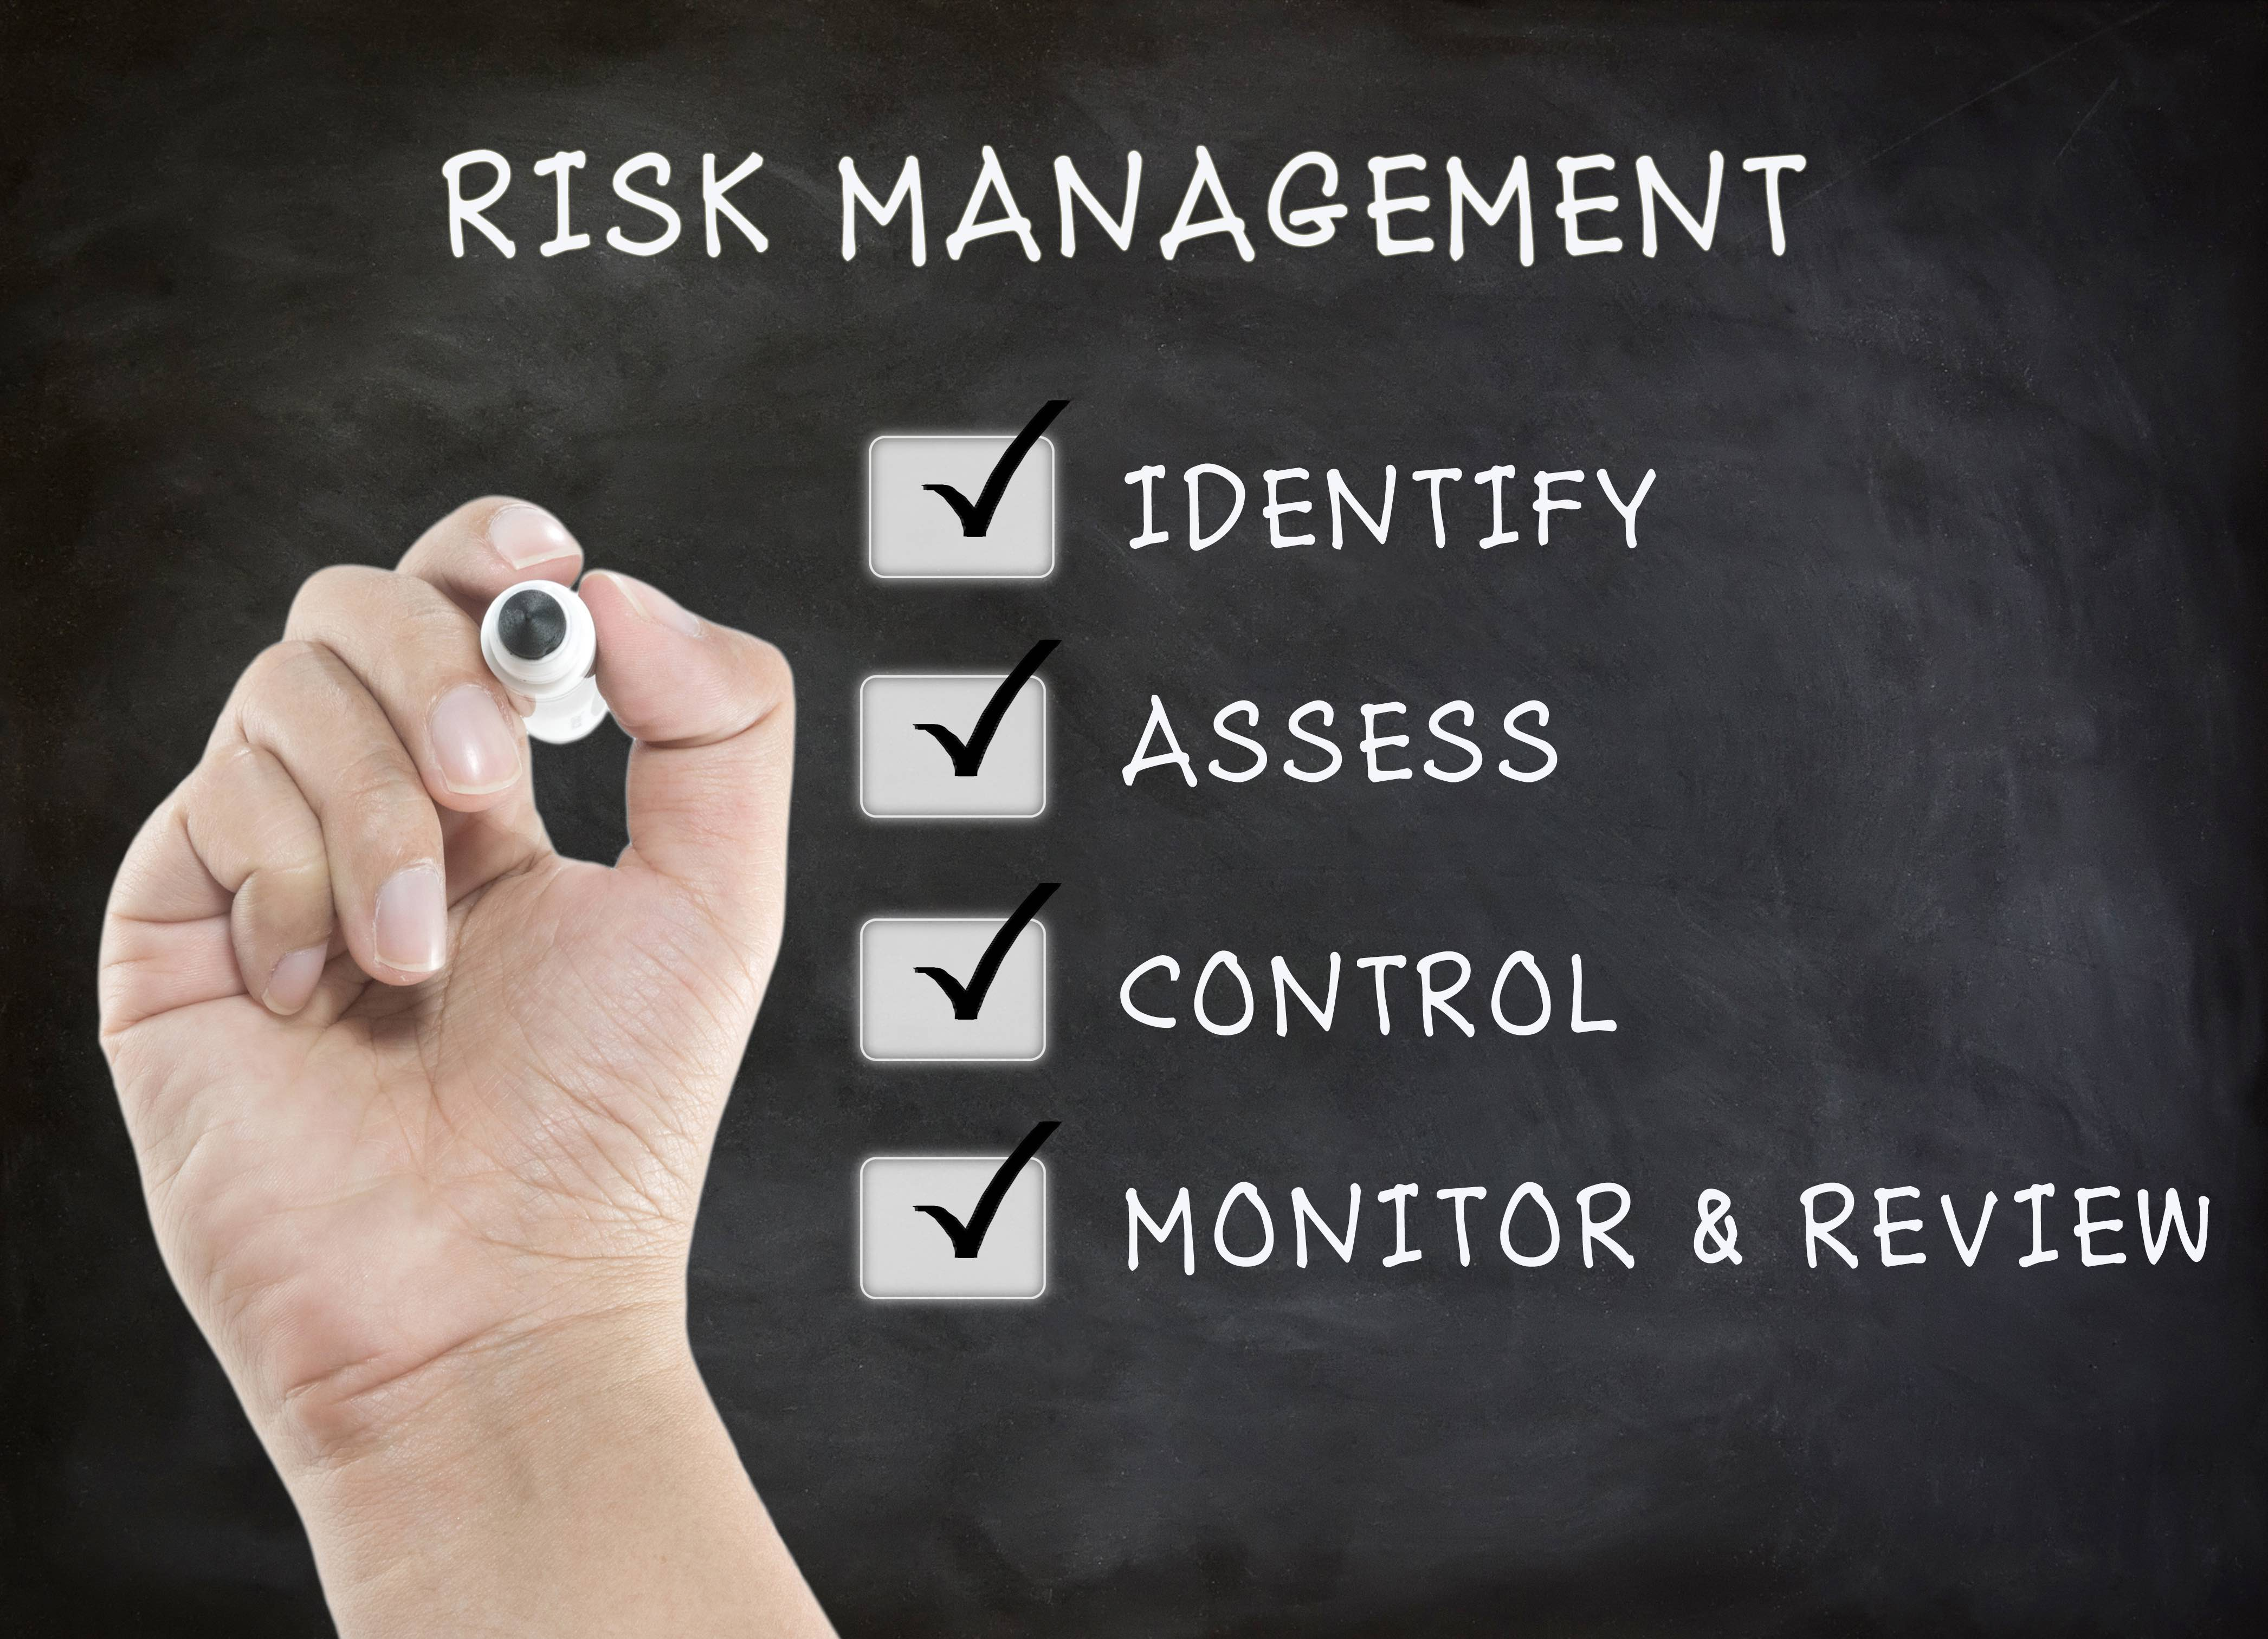 is your risk leadership asking the right questions secure however the last two questions stand out as they relate strongly to the cybersecurity field